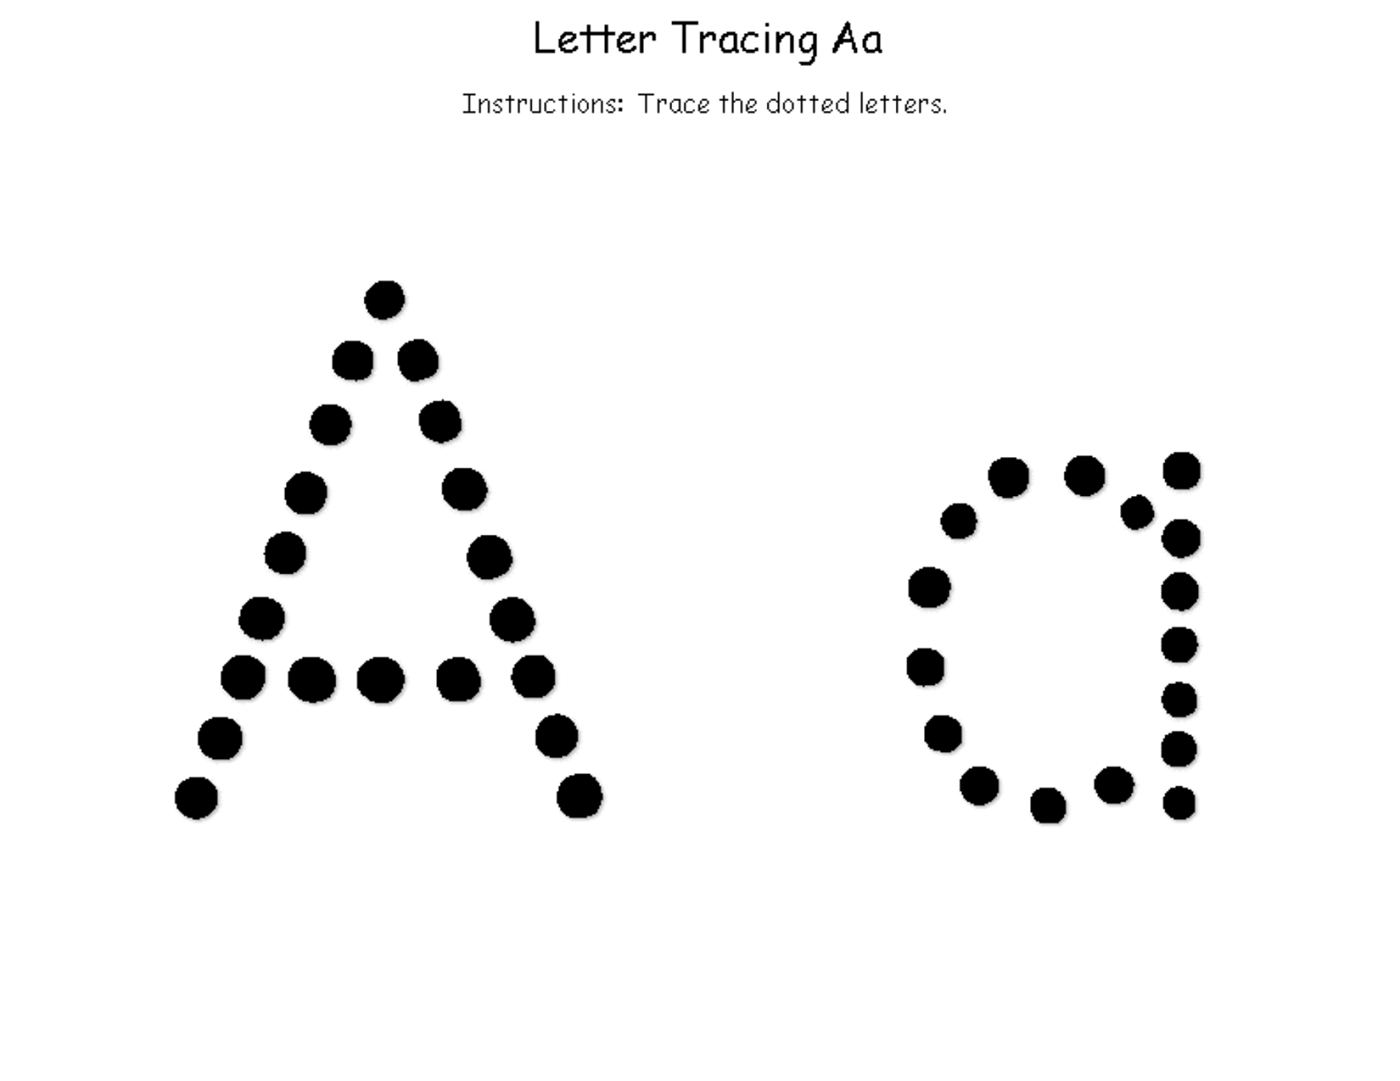 tracing the letter a free printable alphabet and numbers learning tracing letters tracing. Black Bedroom Furniture Sets. Home Design Ideas